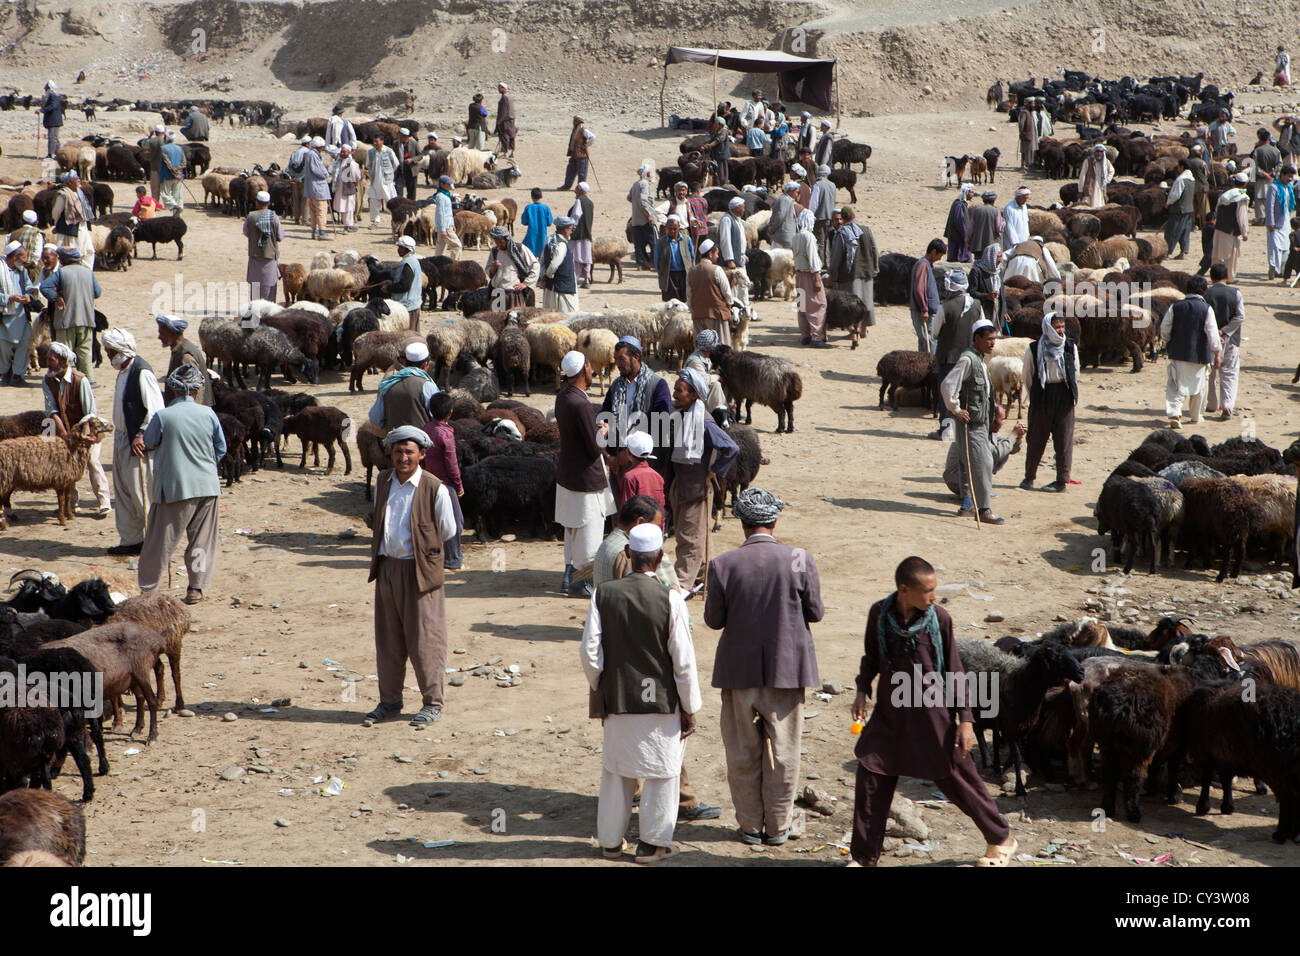 livestock market in kabul, Afghanistan - Stock Image